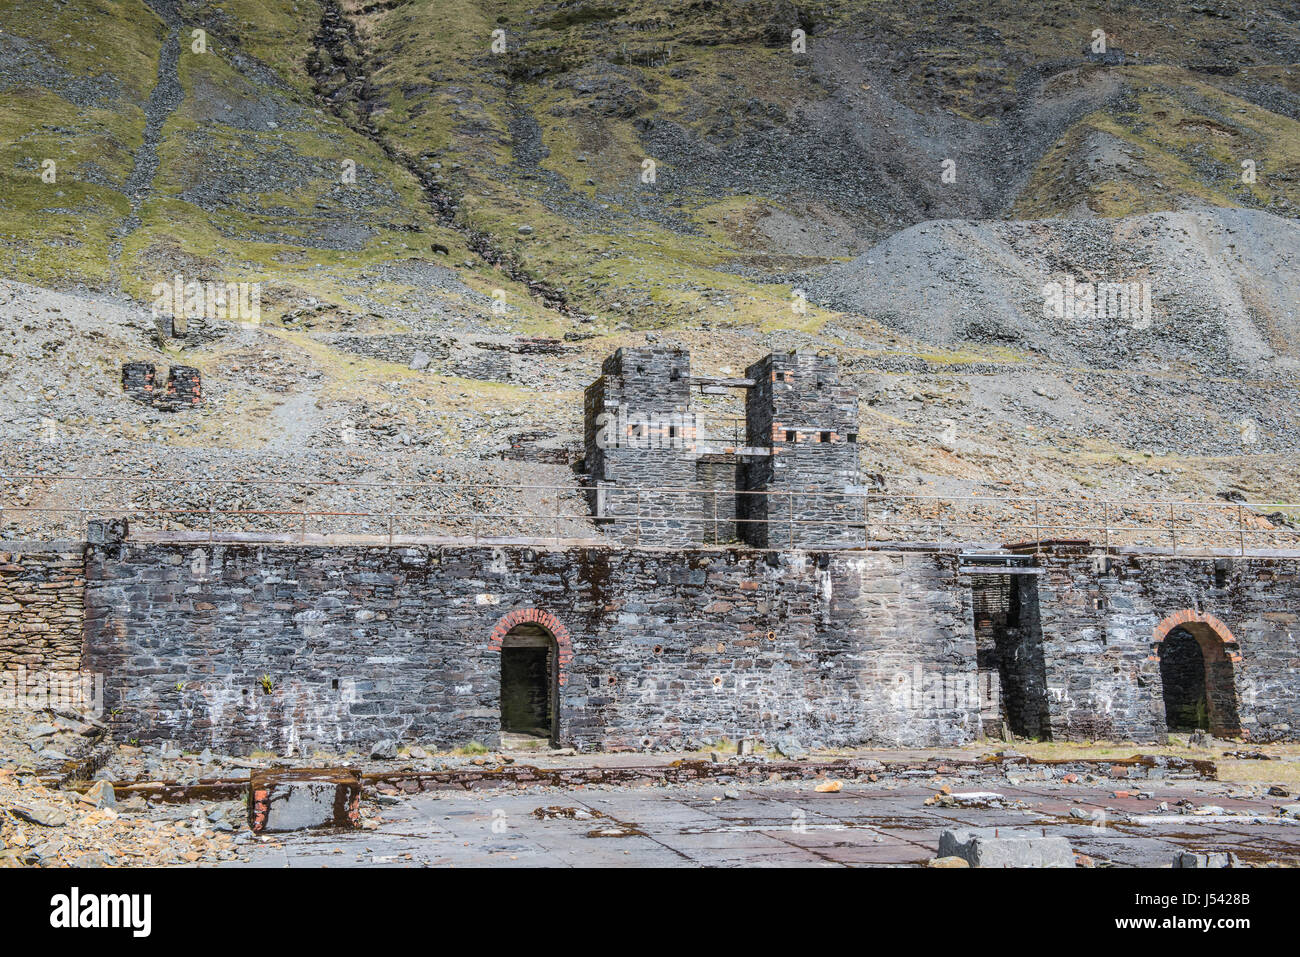 Old Lead Workings Cwmystwyth Cardiganshire Mid Wales - Stock Image